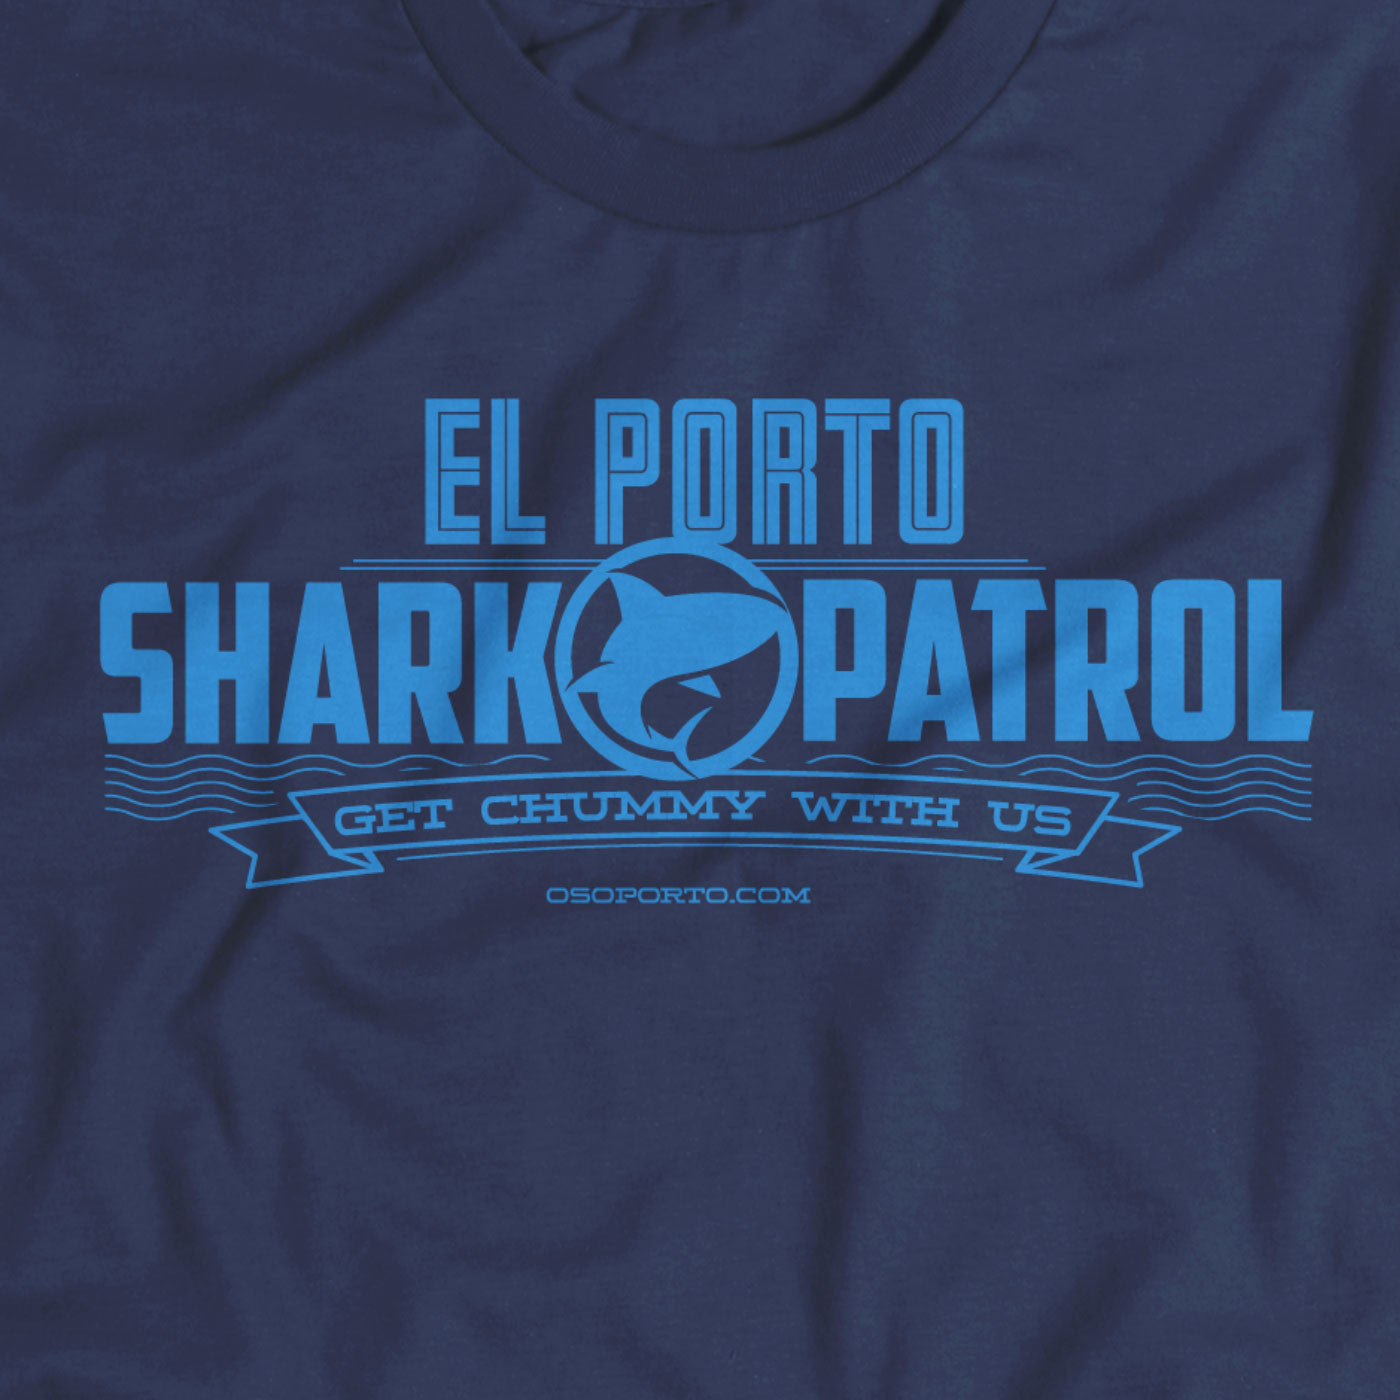 el porto shark patrol t shirt from  custom order shark patrol t shirt